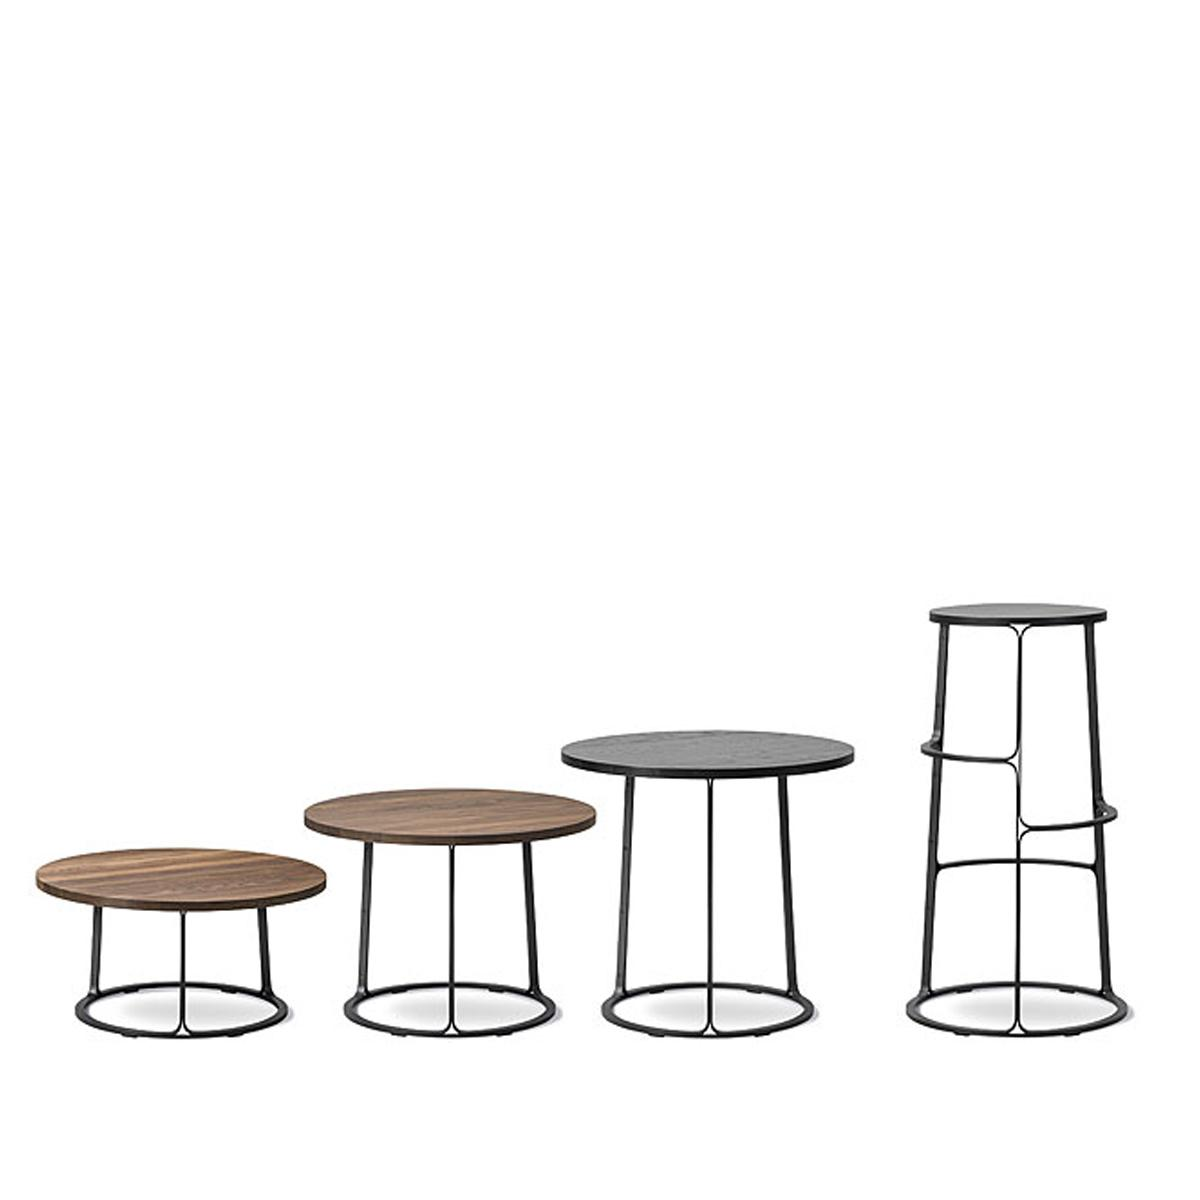 Barbry-Stool-and-Barbry-Coffee-Table-1200